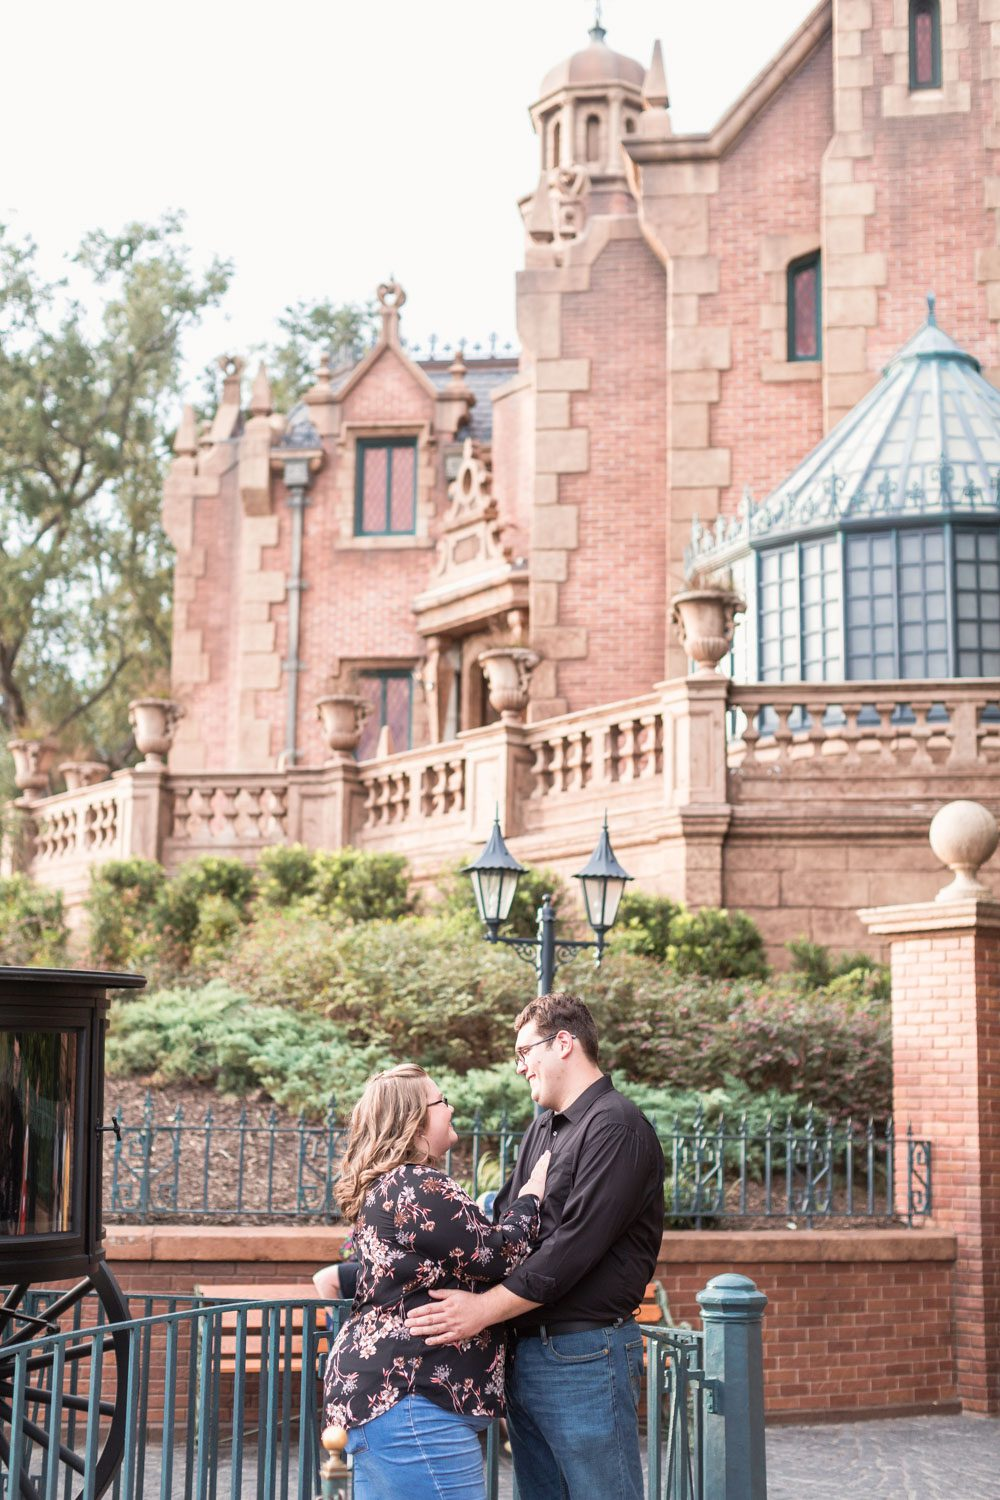 Disney engagement photo in front of the Haunted Mansion at Magic Kingdom in Orlando